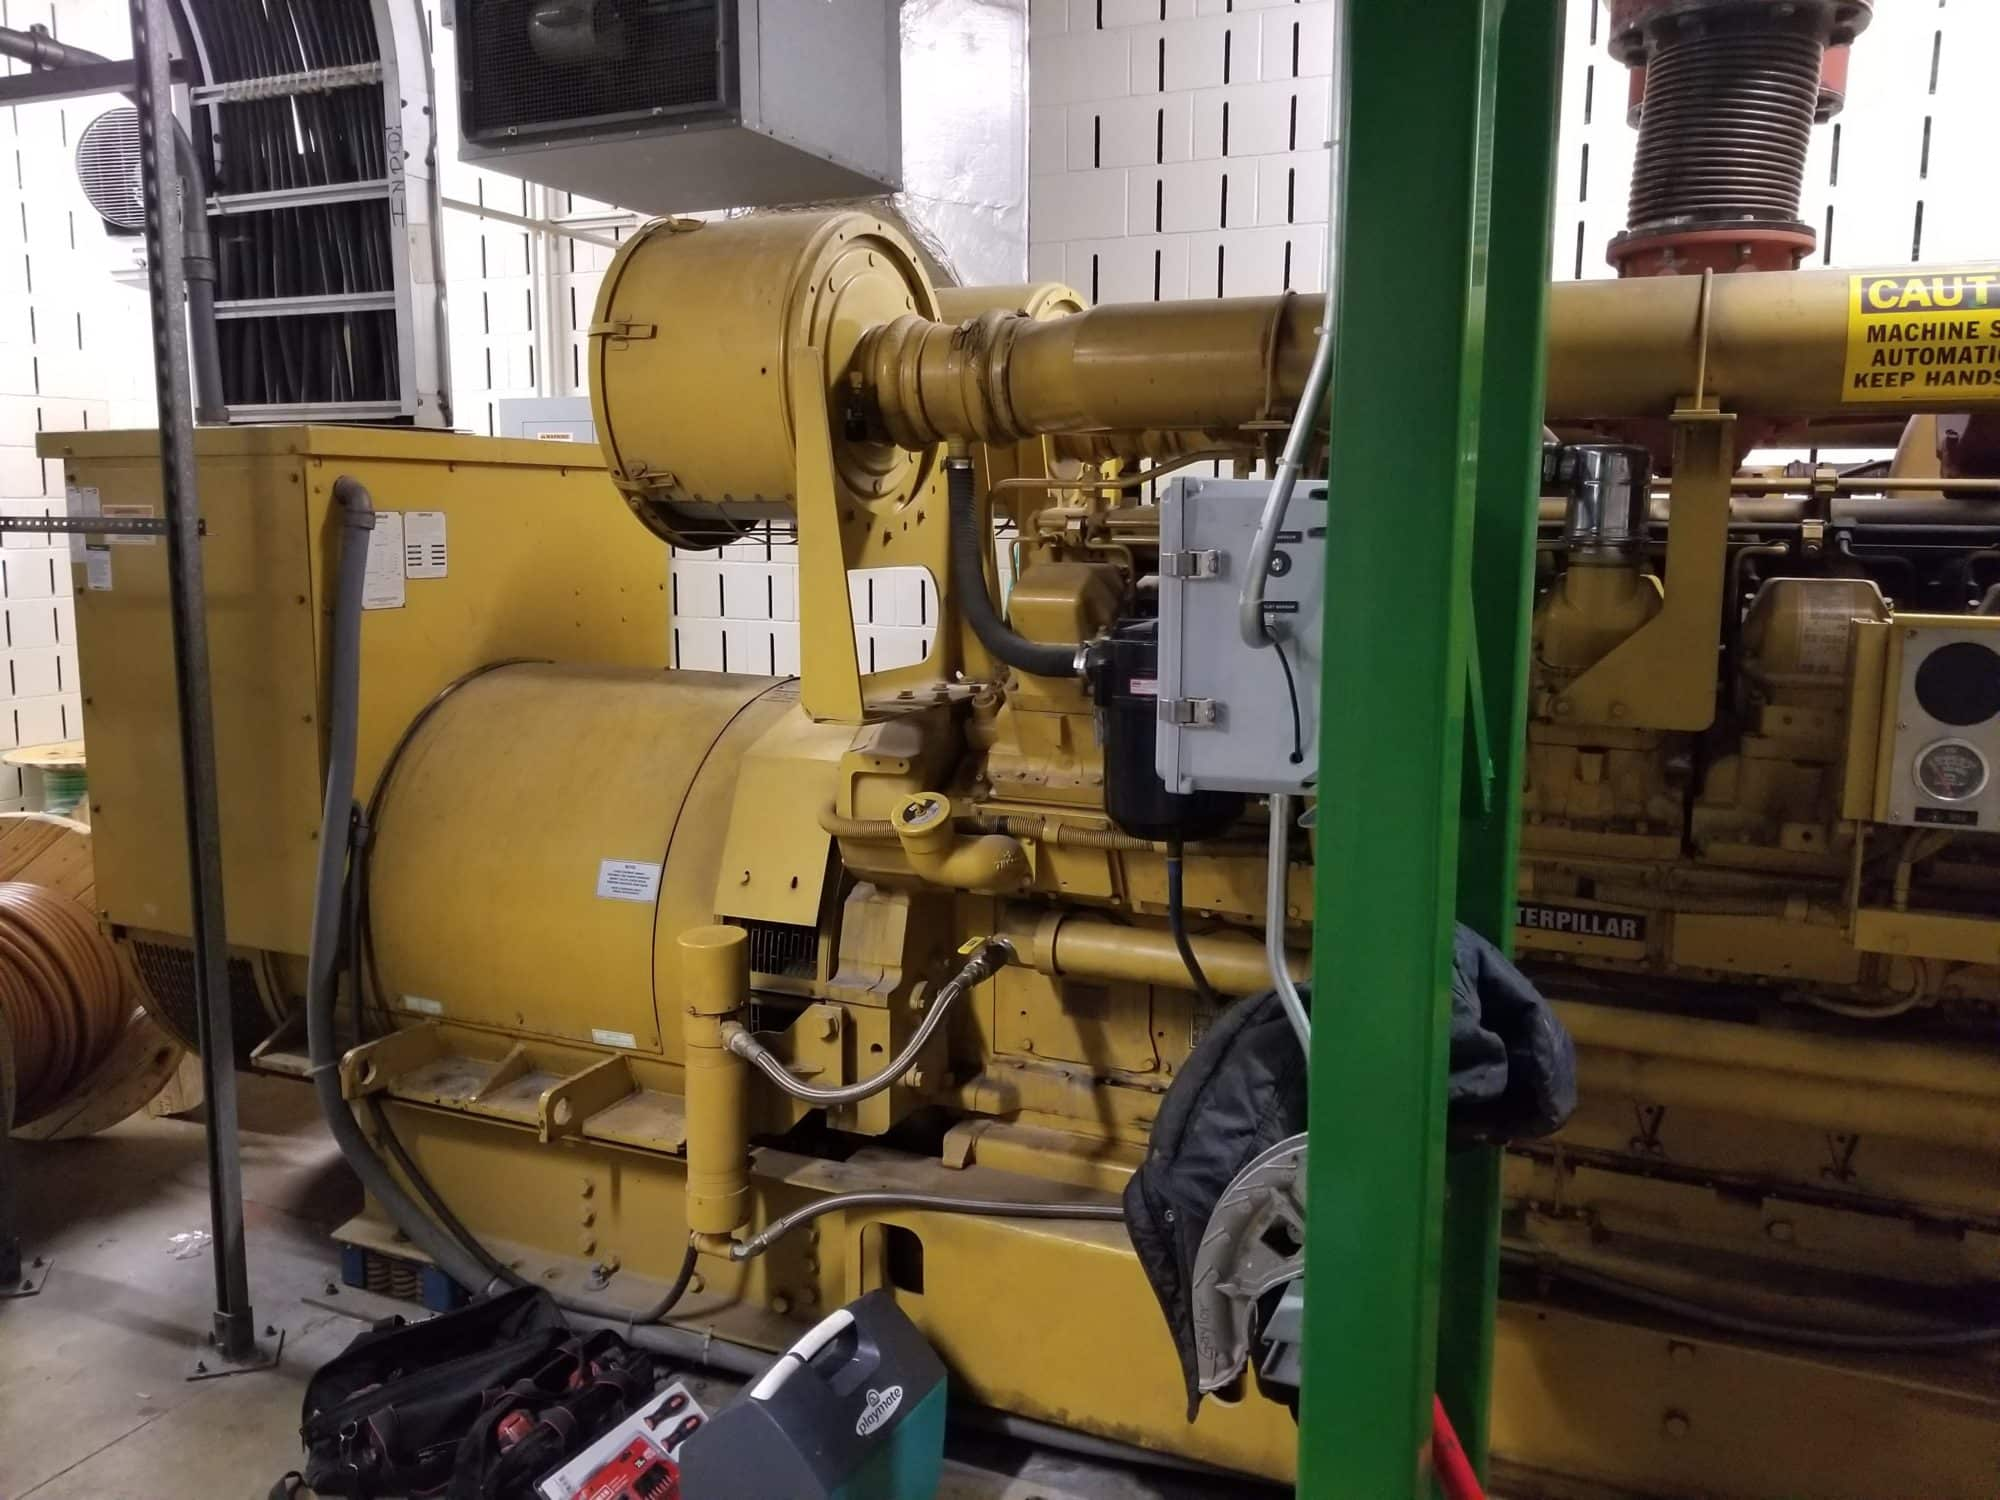 Used 1500 kW CAT 3516 Diesel Generator – SOLD!